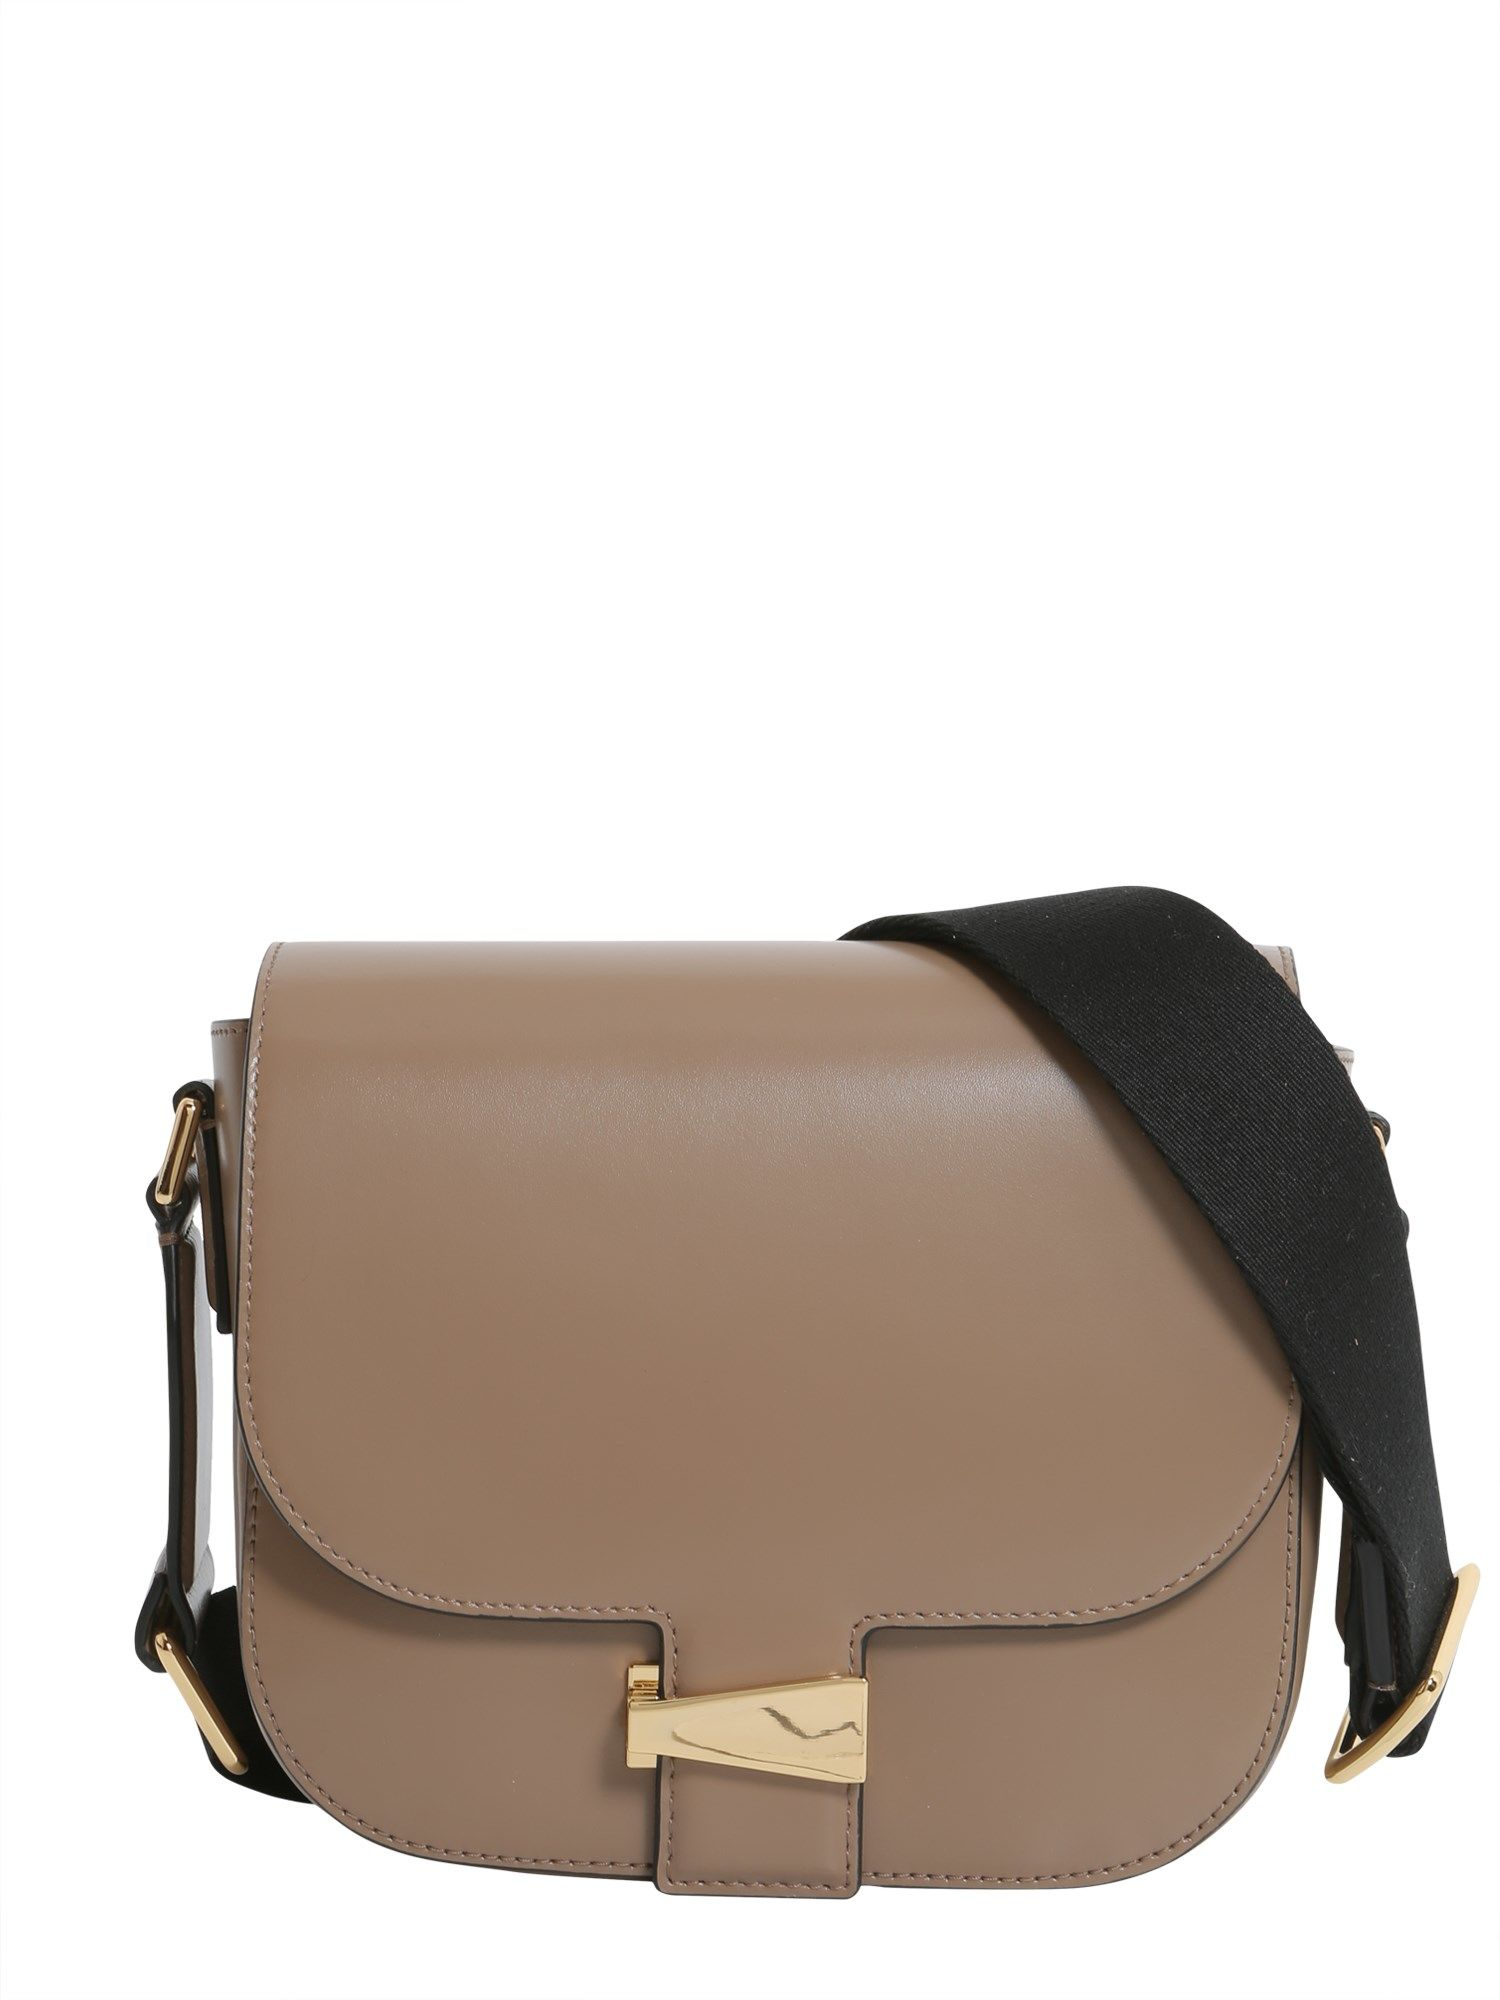 Stacie Crossbody Bag